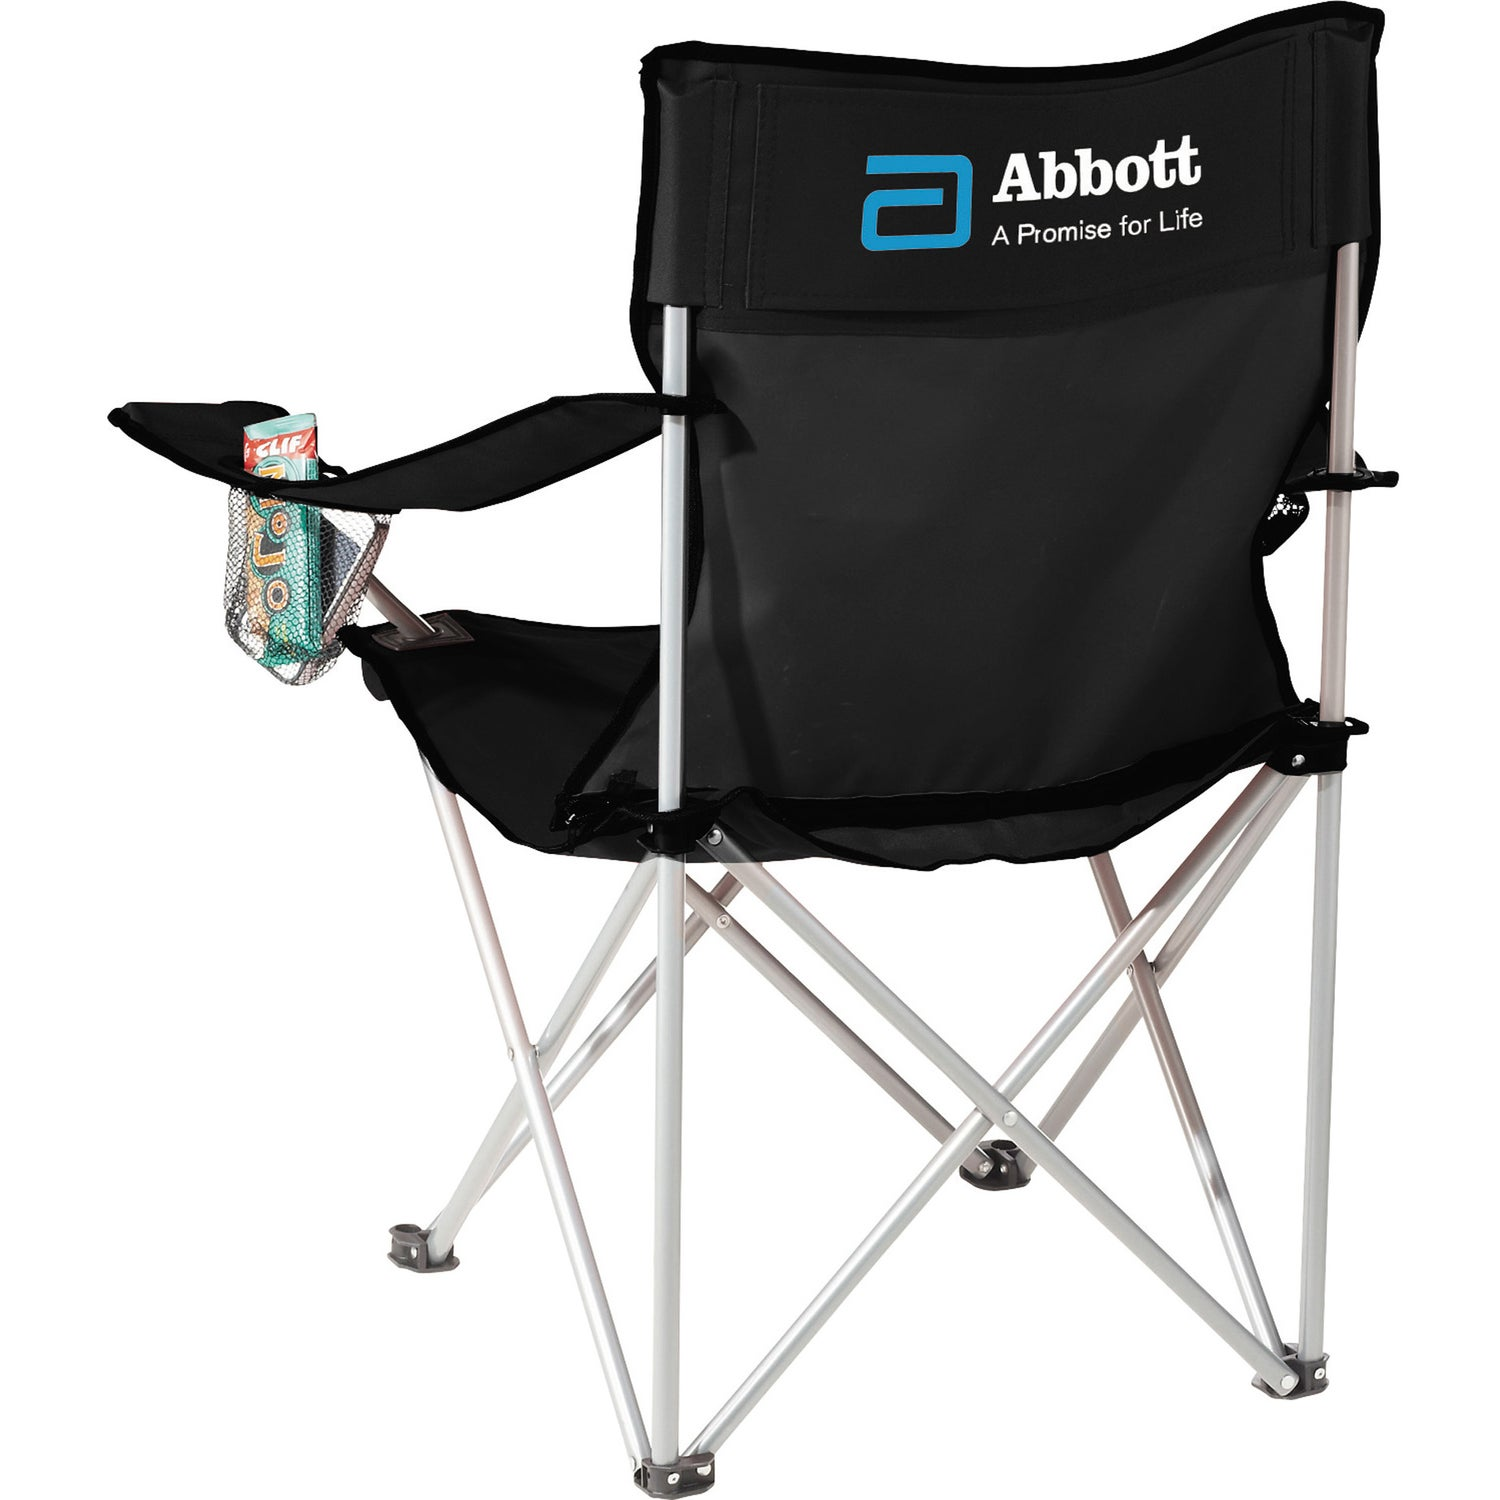 Black Fanatic Event Folding Chair Giveaways  sc 1 st  Quality Logo Products & Promotional Fanatic Event Folding Chairs with Custom Logo for $10.78 Ea.